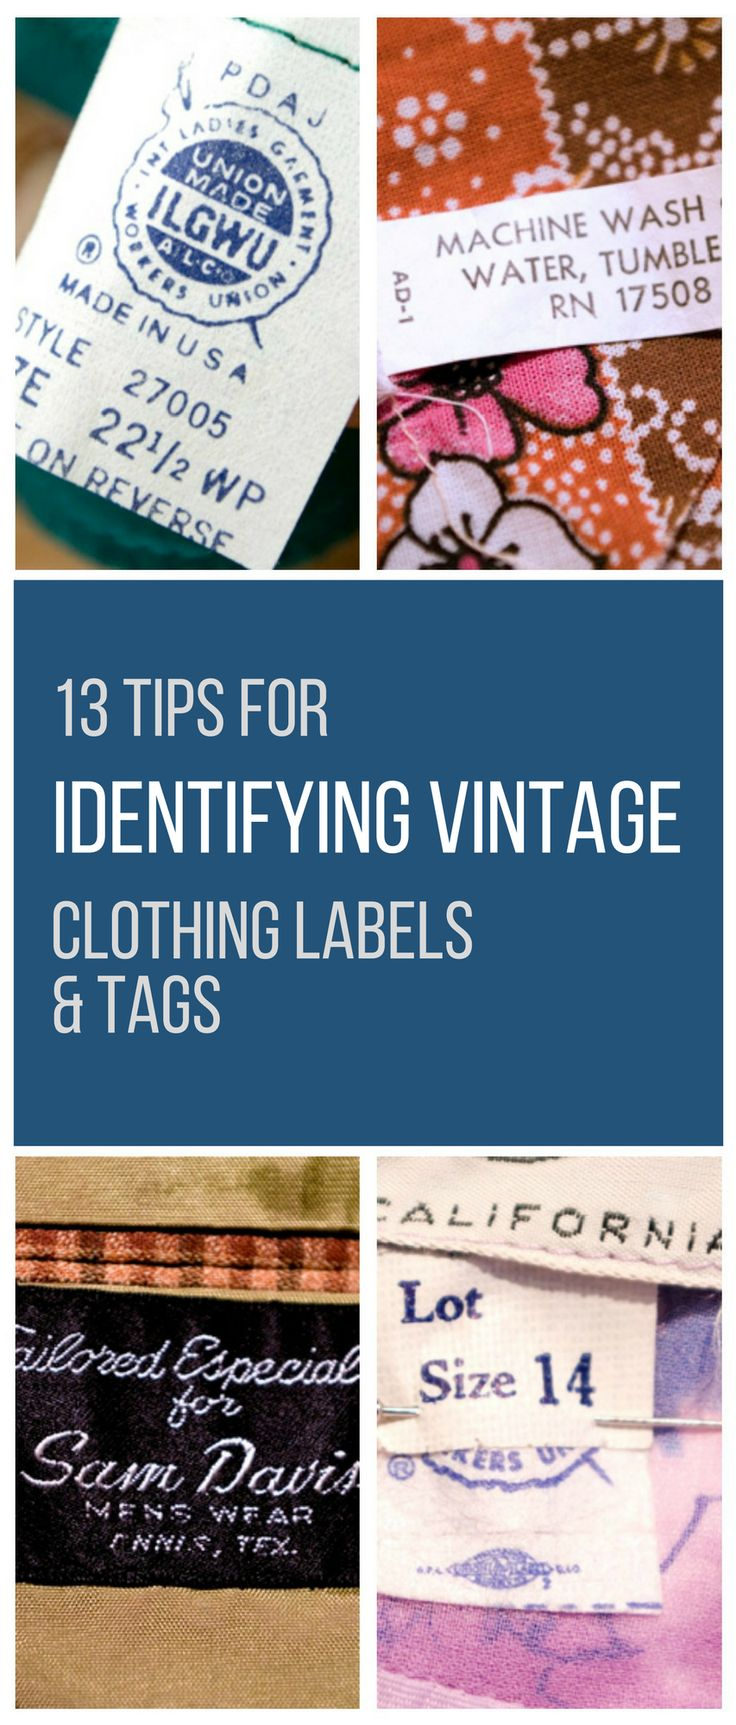 dating vintage clothes labels How to date vintage clothing  i hope this information was helpful to you and have fun dating more of your vintage categories1950s,1960s,dating vintage,vintage skirts  sometimes the labels have been removed or the garment was imported from outside the us reply delete wordy february 23, 2010 12:27 pm.